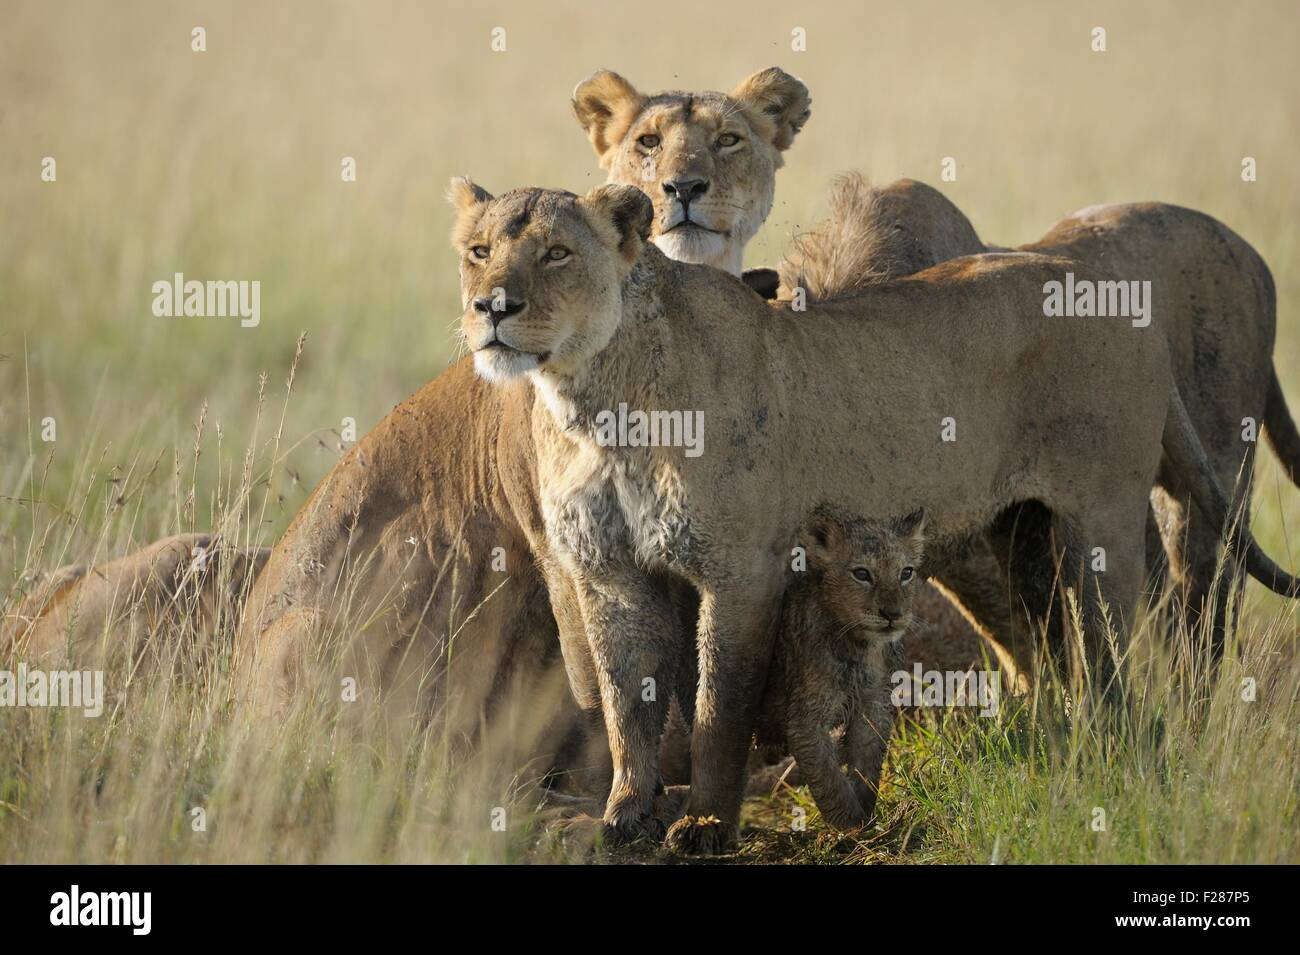 Two lionesses (Panthera leo), protecting their young, Maasai Mara National Reserve, Narok County, Kenya - Stock Image